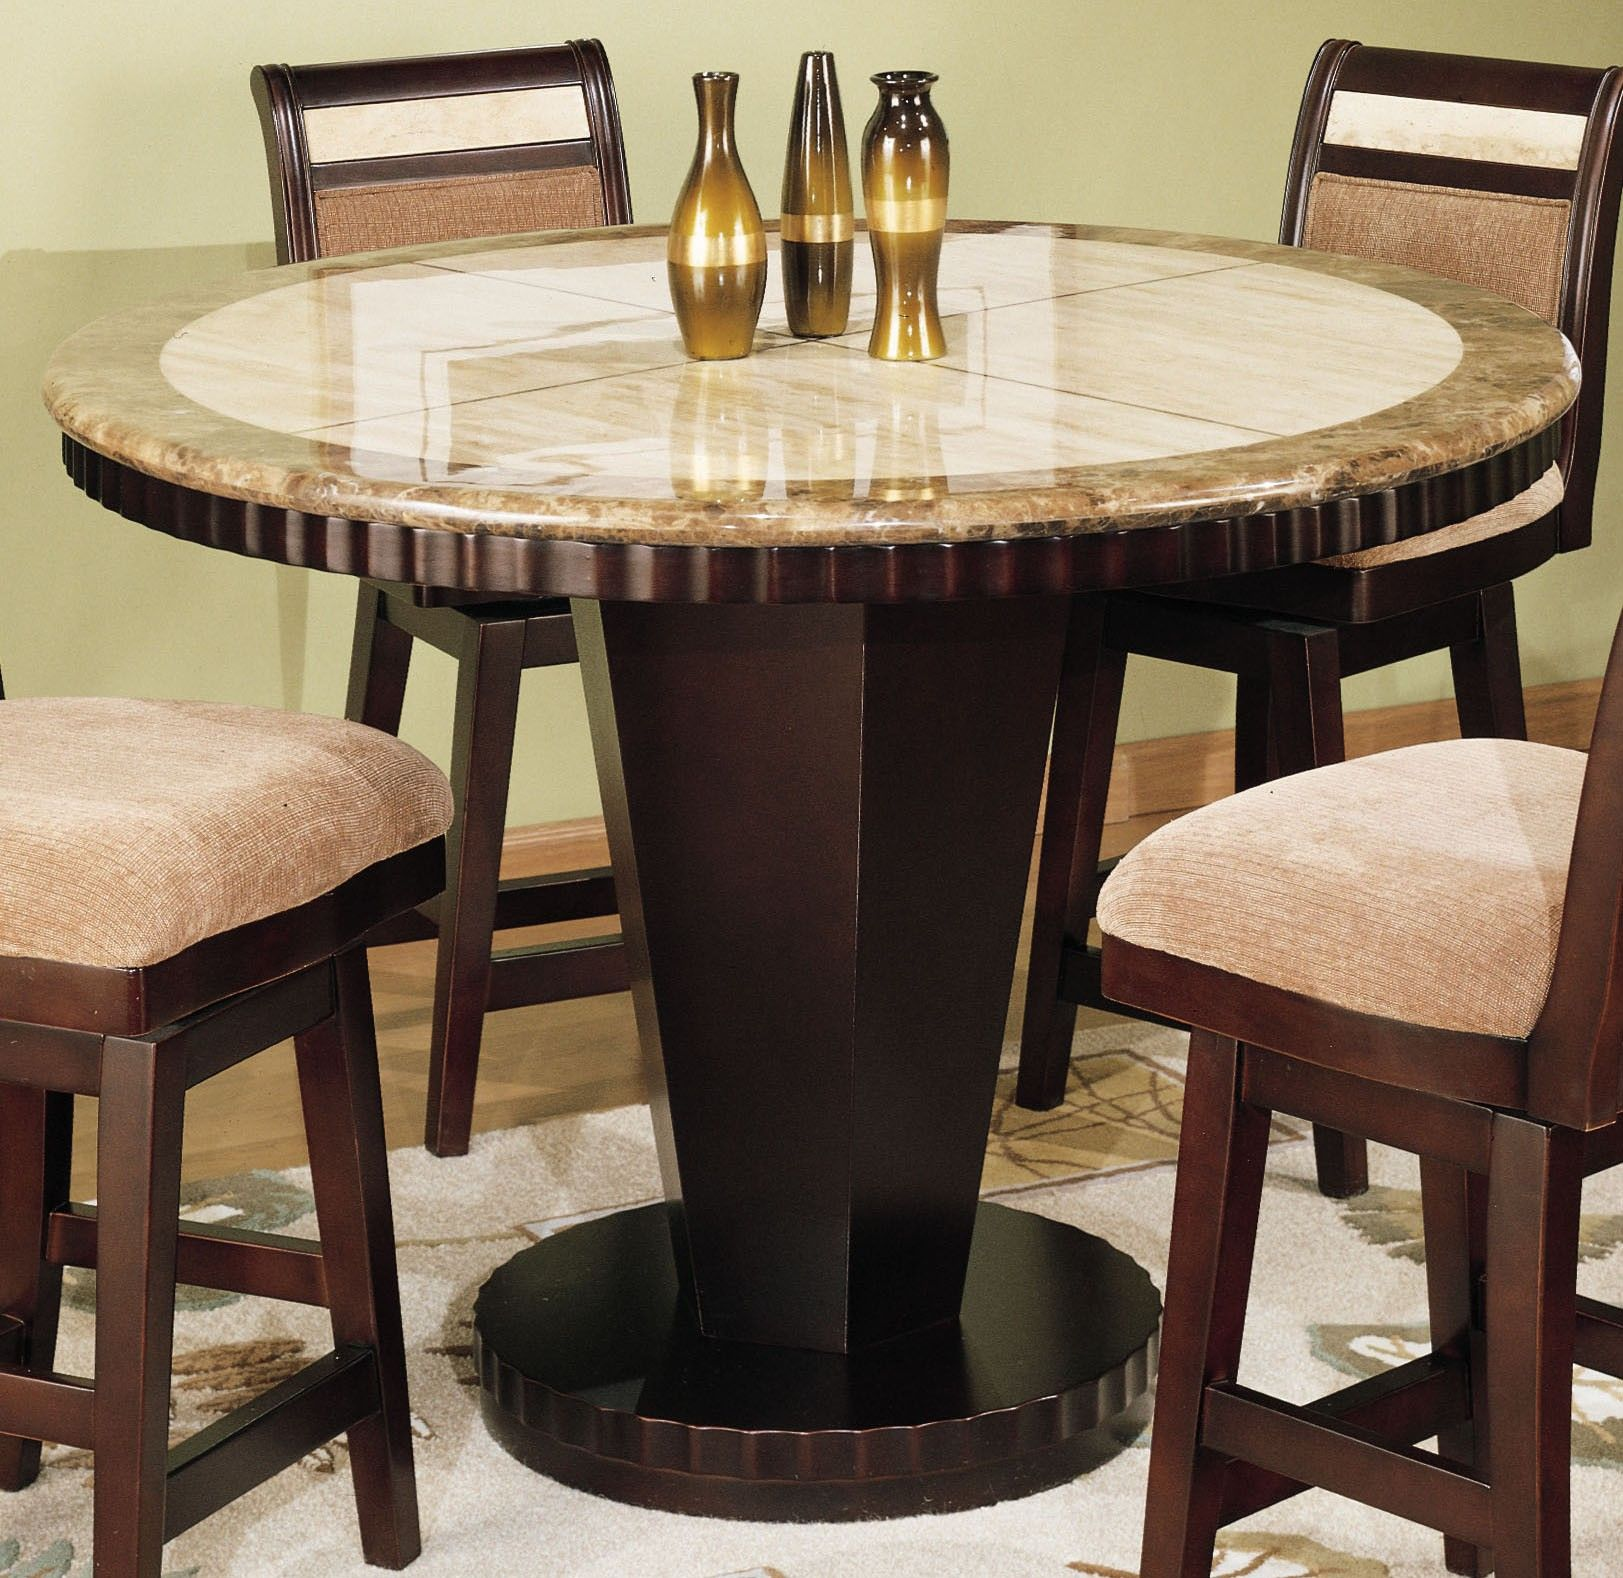 Round Marble Top Dining Table Picture Of Armen Living Corallo Counter Height Round